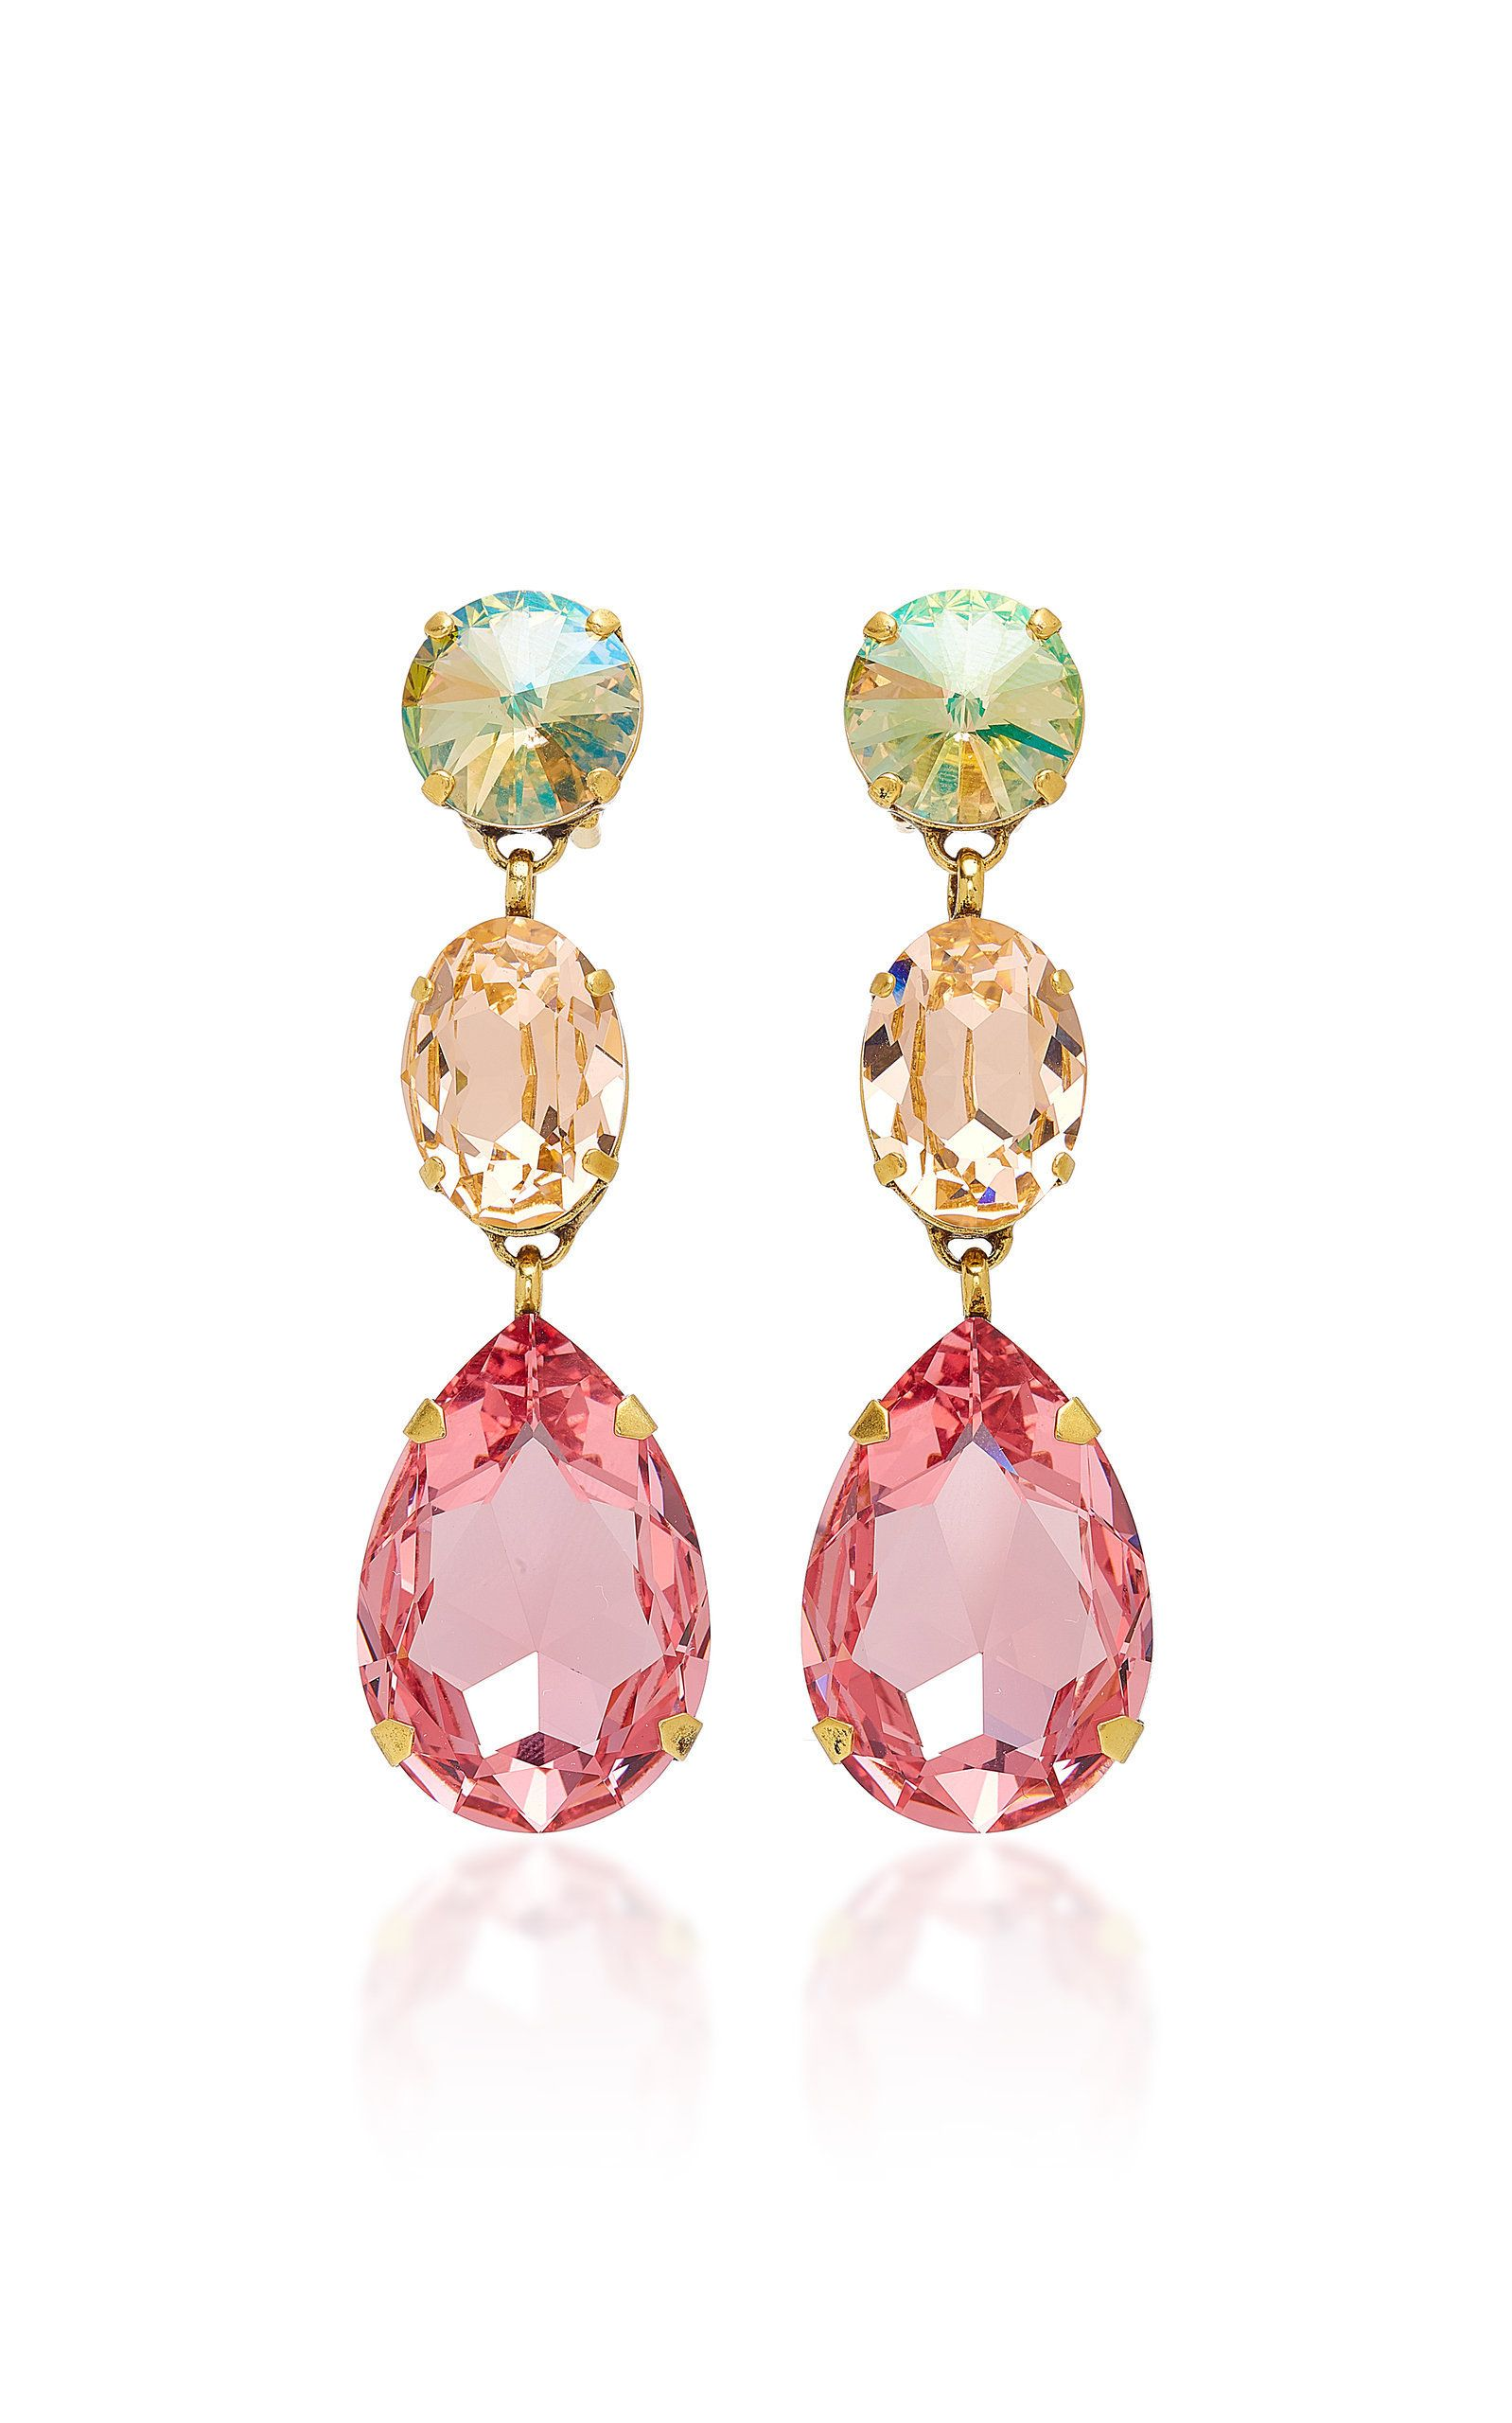 Roxanne Assoulin Hip Hop But Not Gold-tone Swarovski Crystal Clip Earrings - Pink